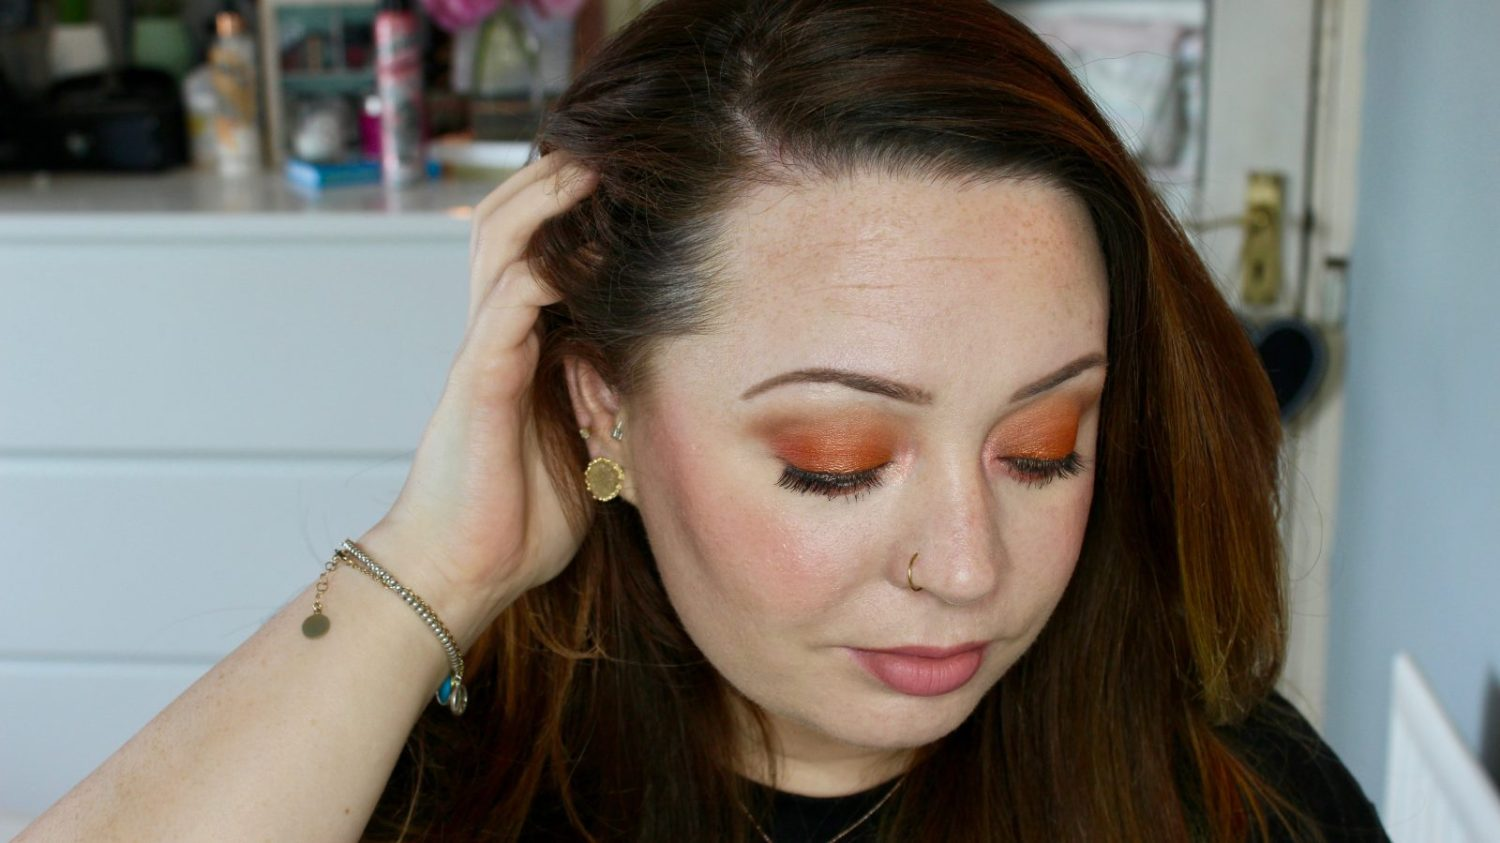 Nyx Cosmetics Eye Makeup Look